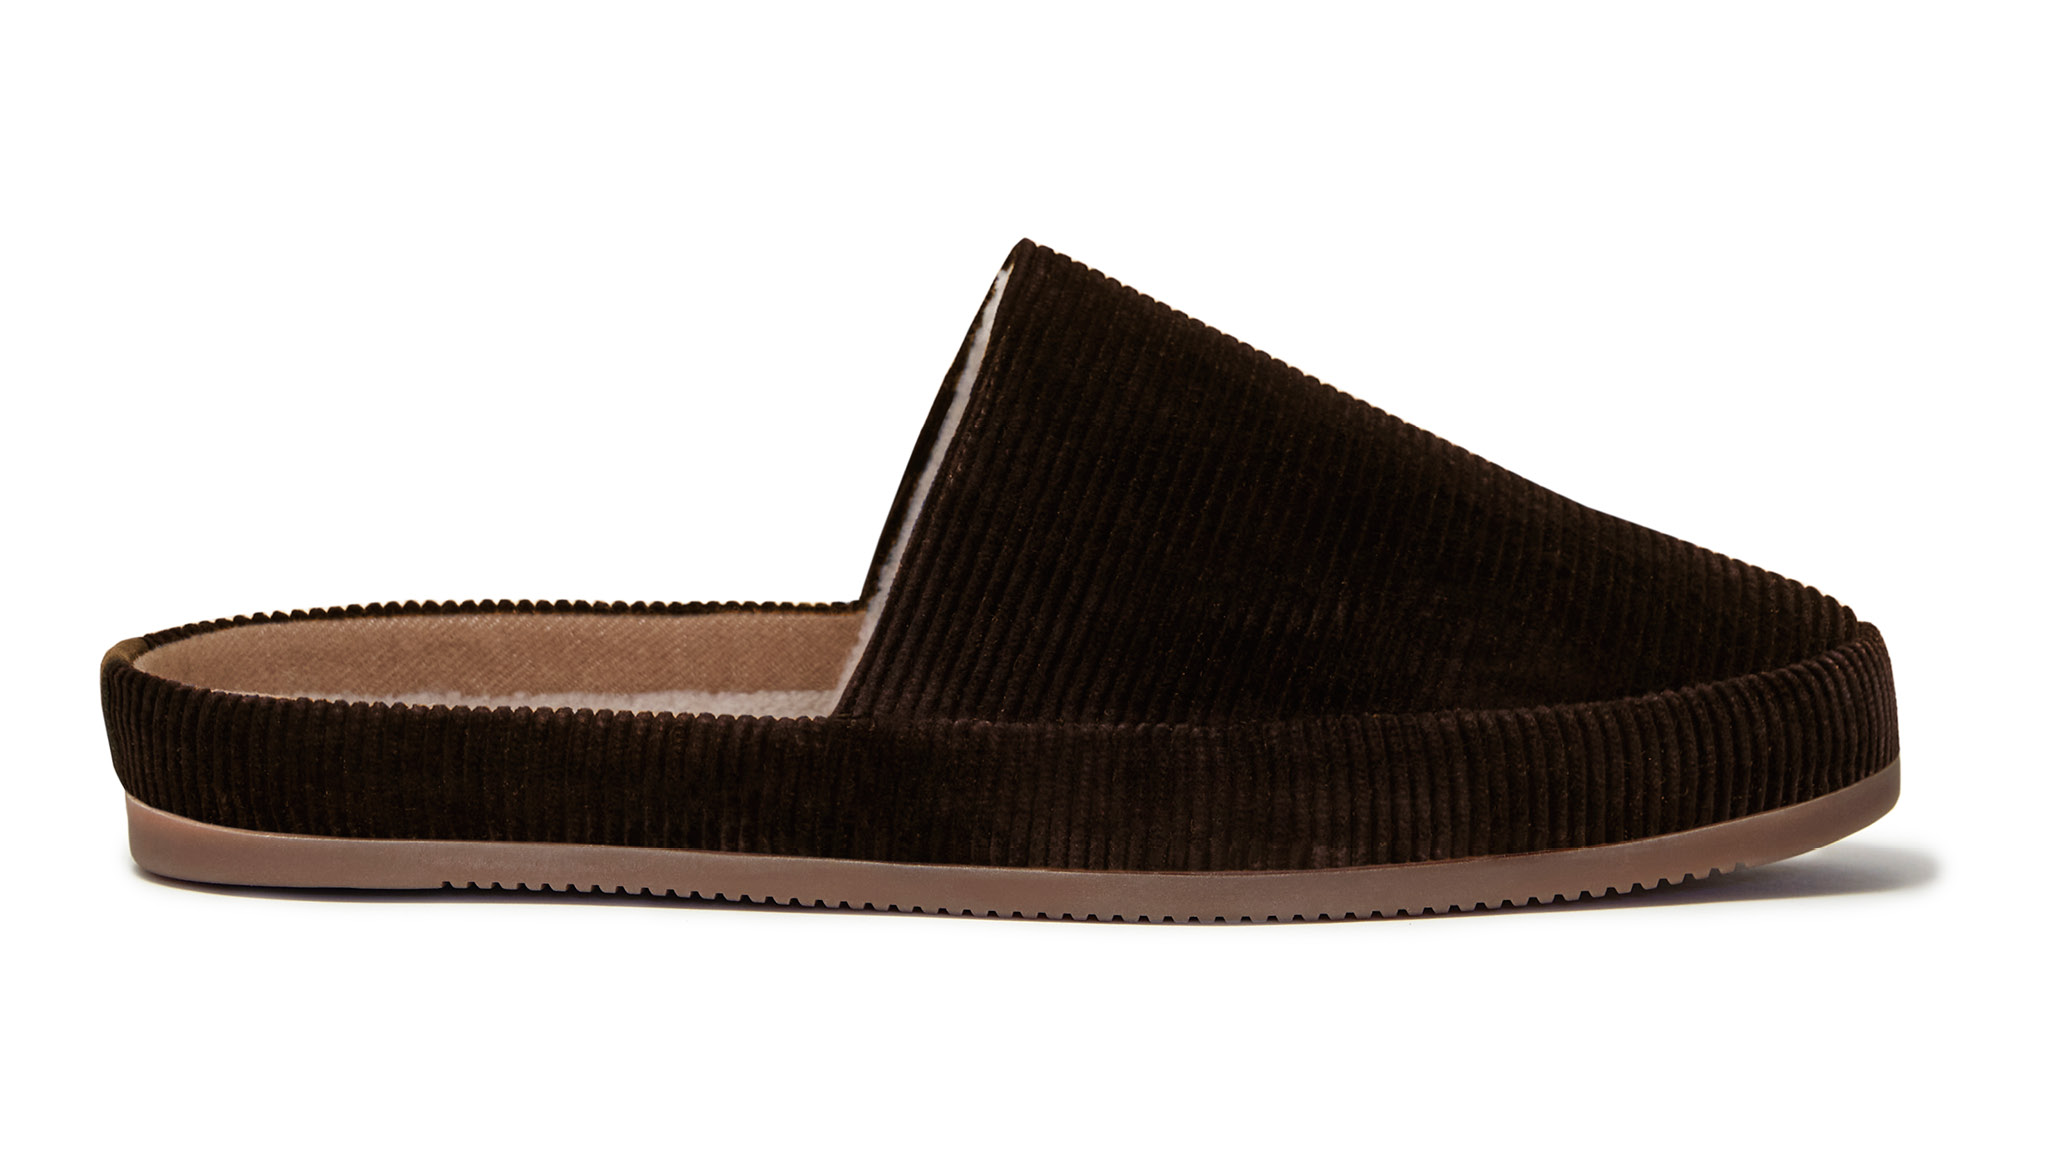 Mens Backless Slippers in Brown Corduroy